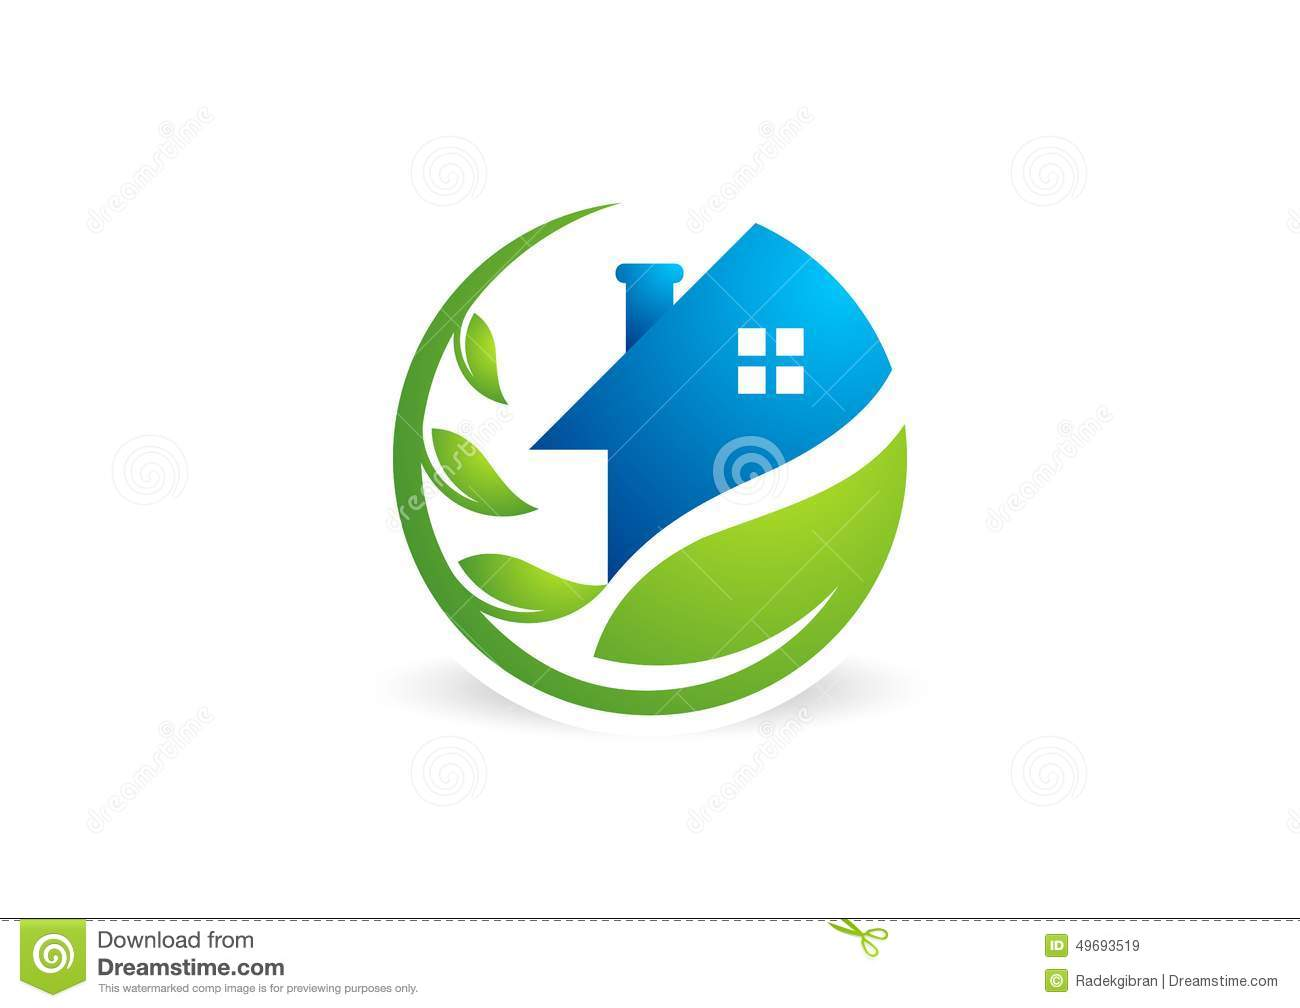 home, house, real estate, logo, circle building, architecture, home plant nature symbol icon design vector